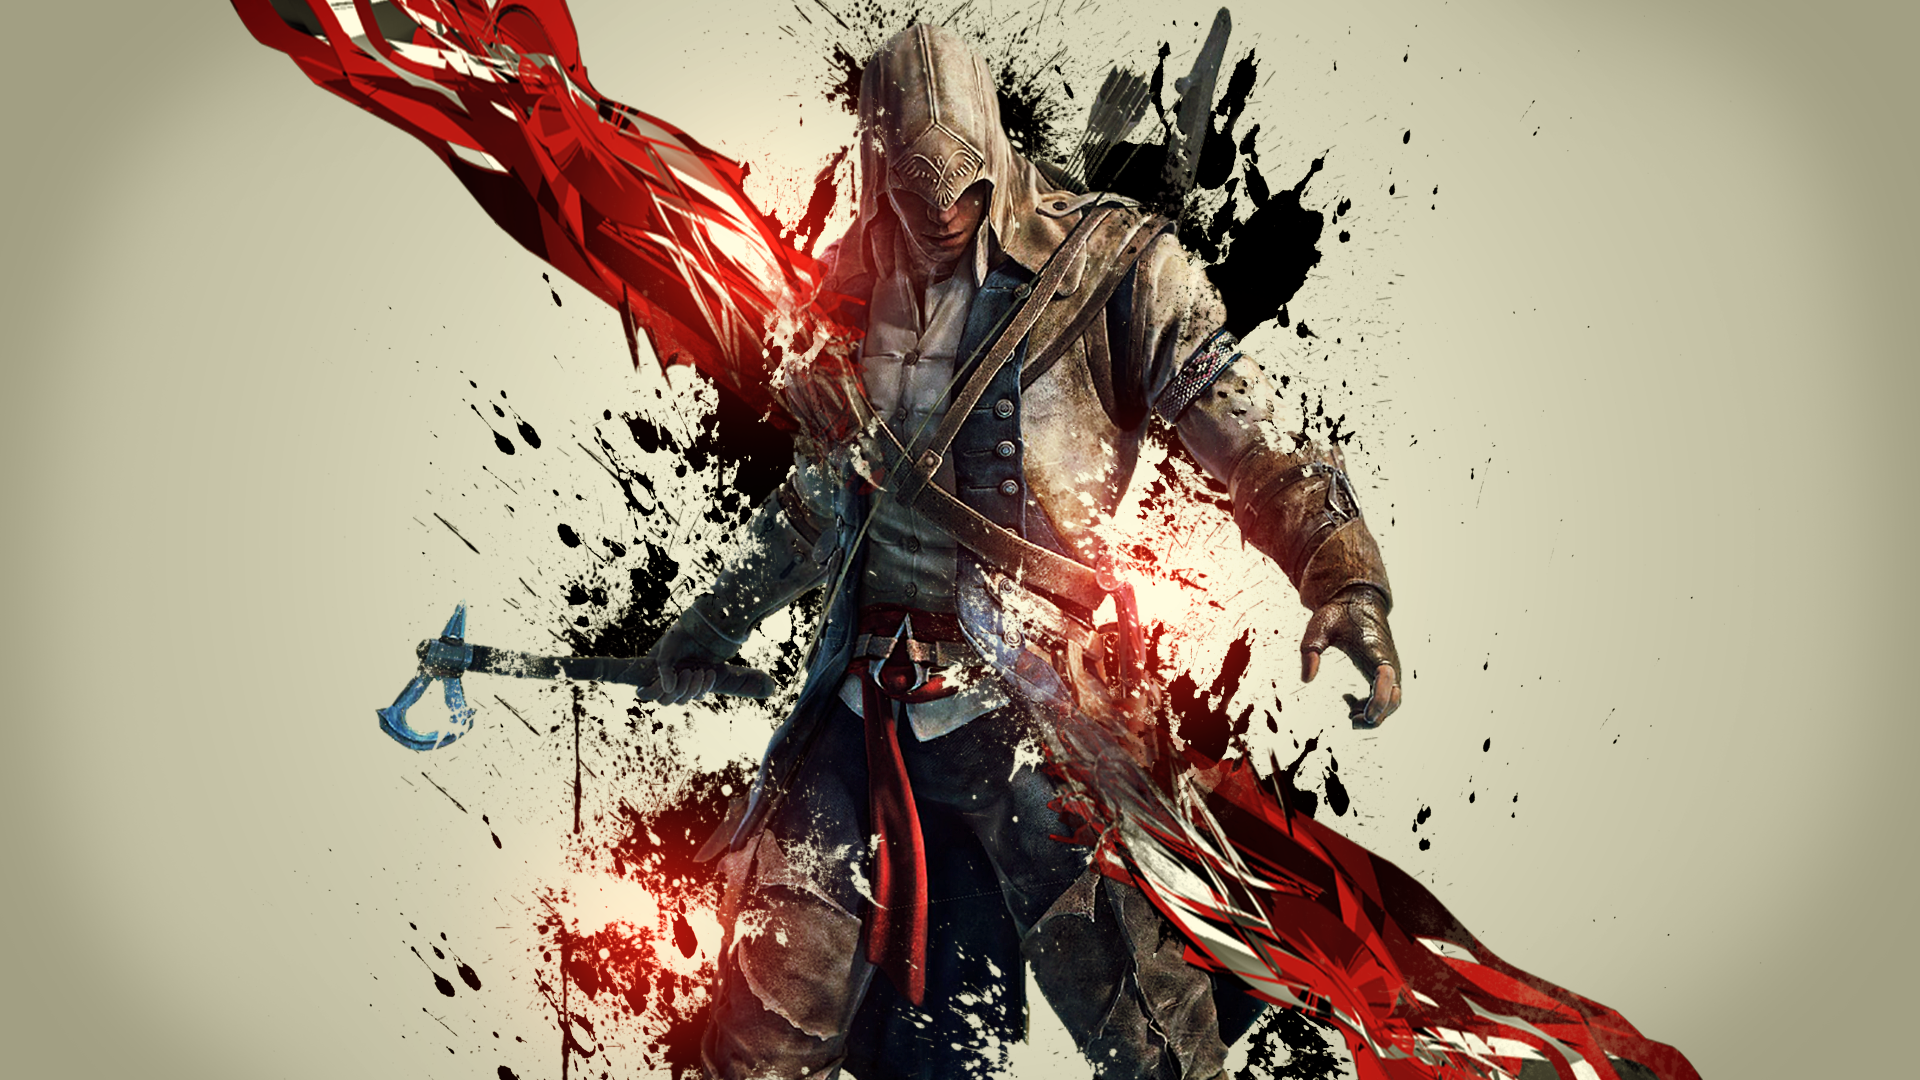 Assassins Creed III   Review Supernovonet 1920x1080